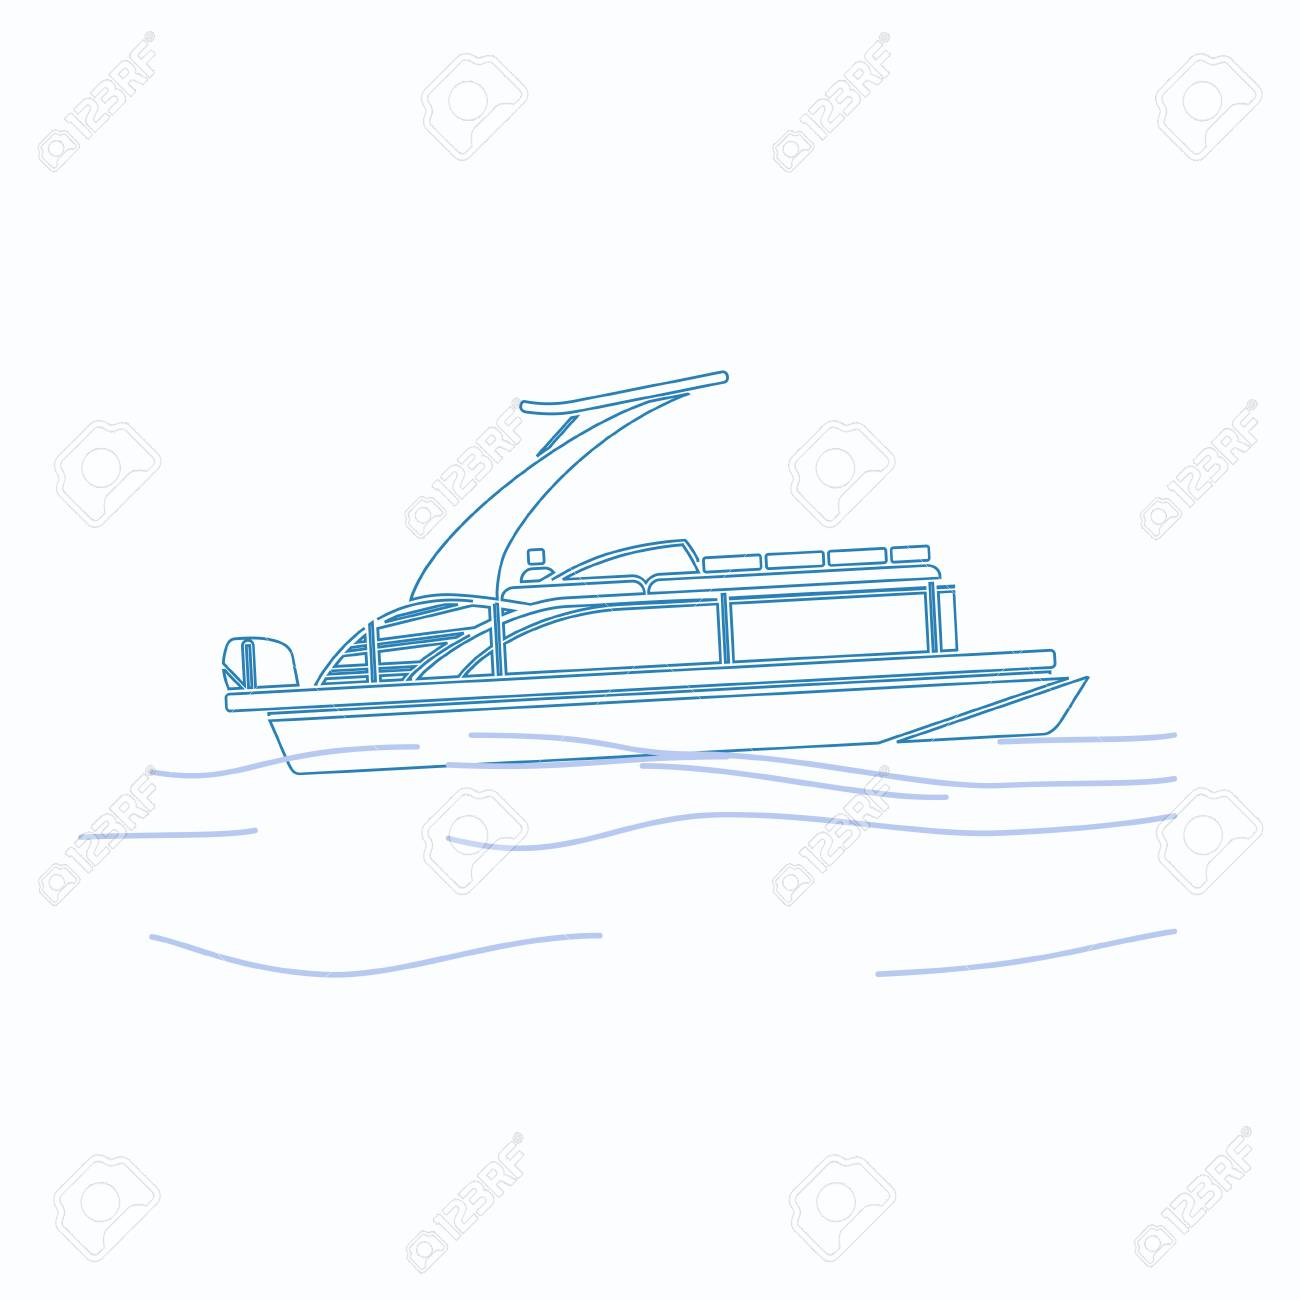 hight resolution of editable pontoon boat vector illustration in outline style stock vector 89094449